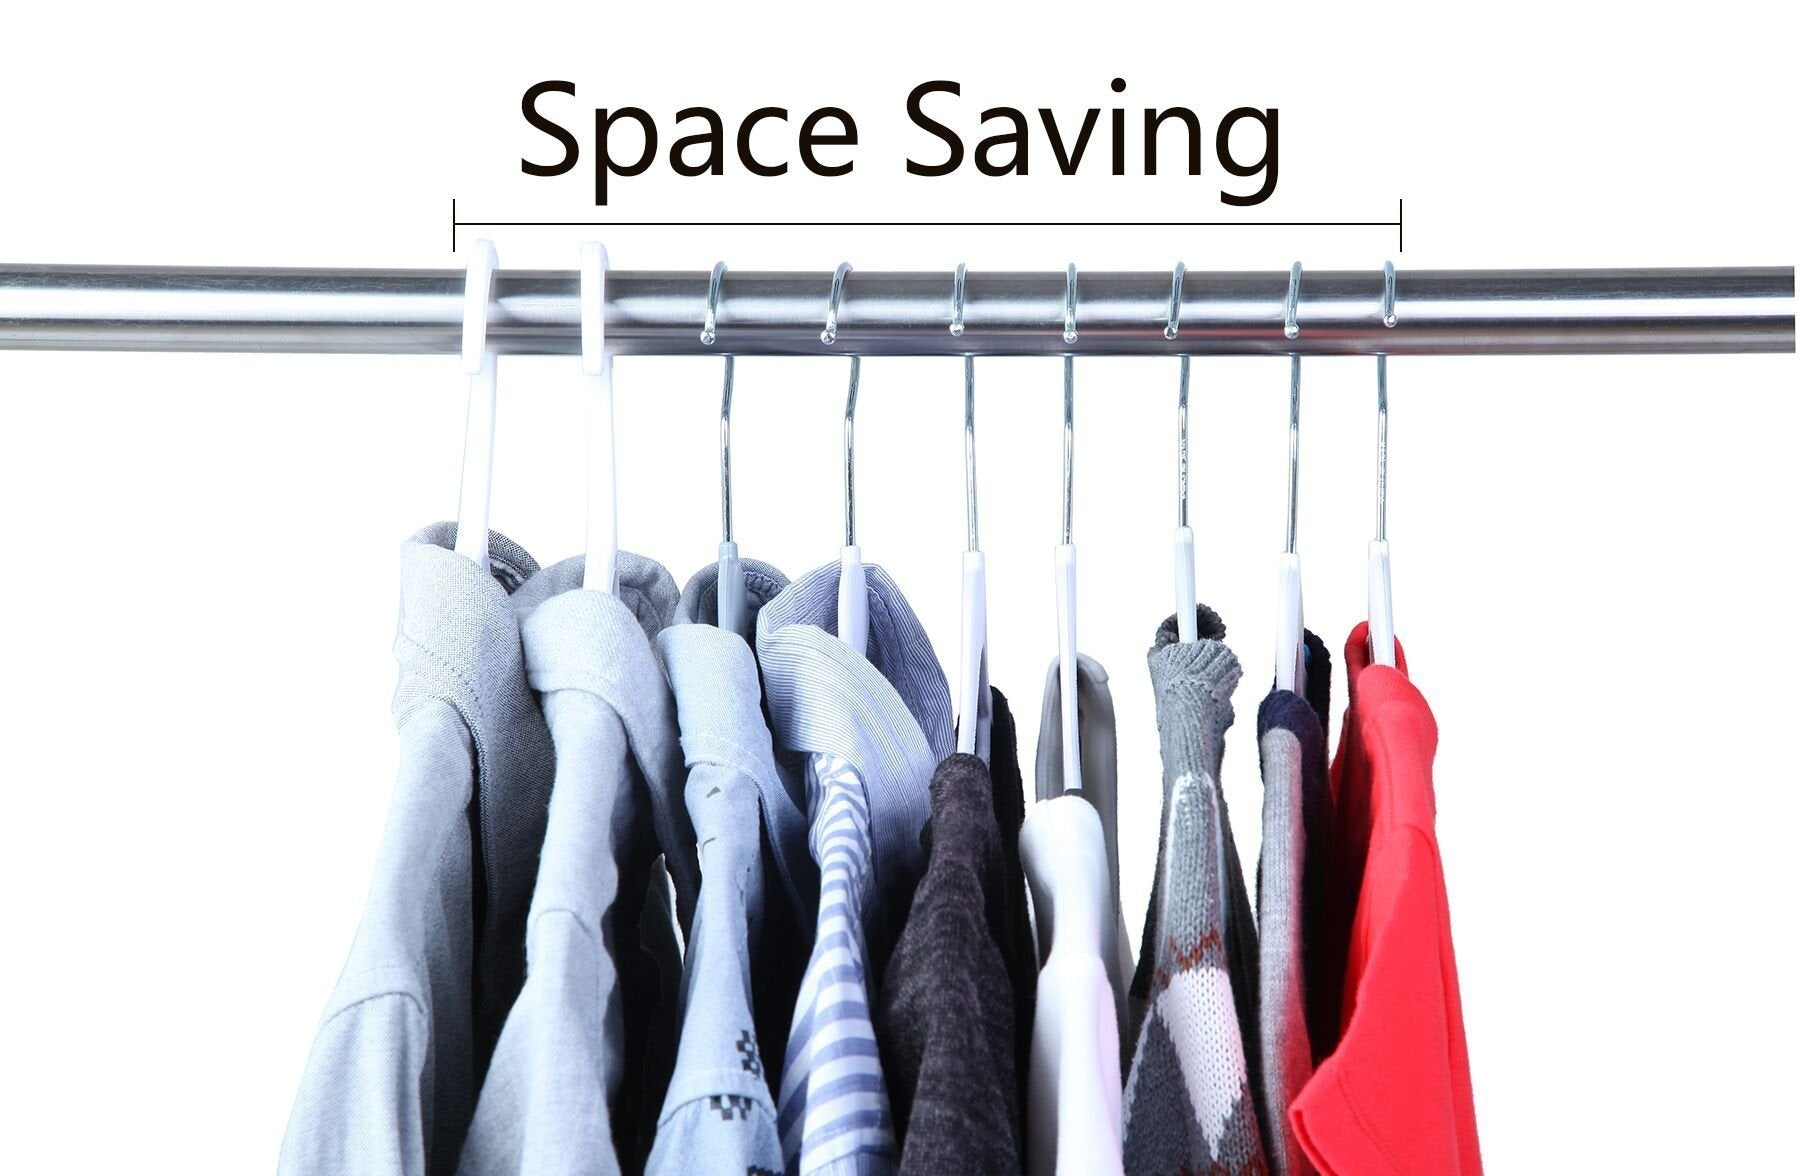 Storage finnhomy super value 50 pack plastic hangers durable clothes hangers with non slip pads space saving easy slide organizer for bedroom closet wardrobe great for shirts pants scarves